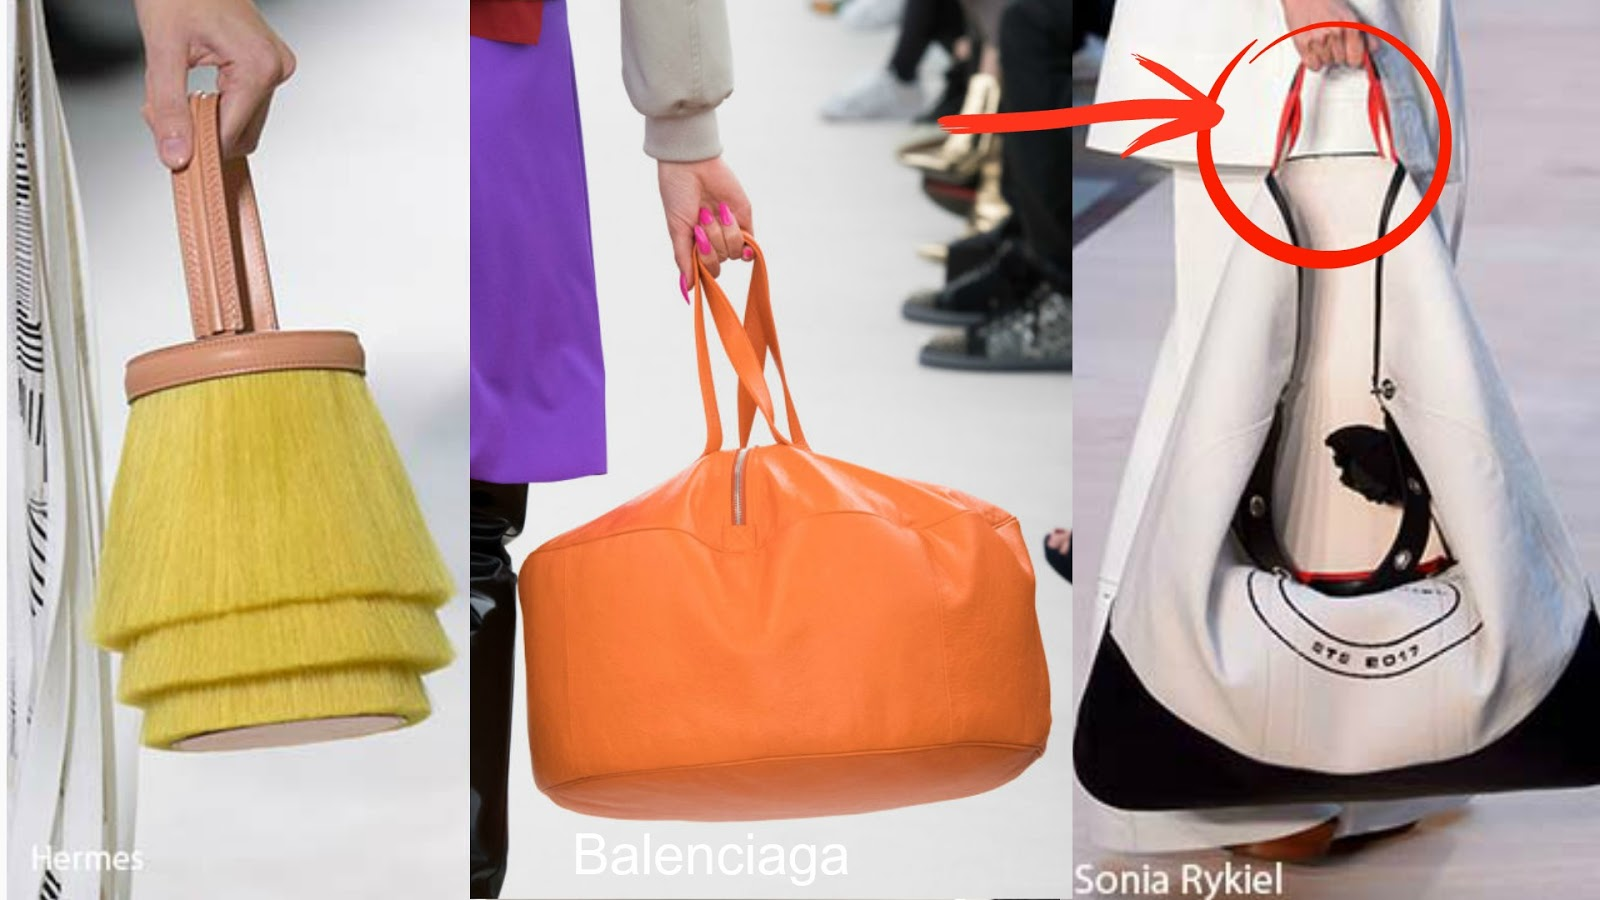 022ea8cb169d Bag Trends to Know For Spring 2017 - FashionR